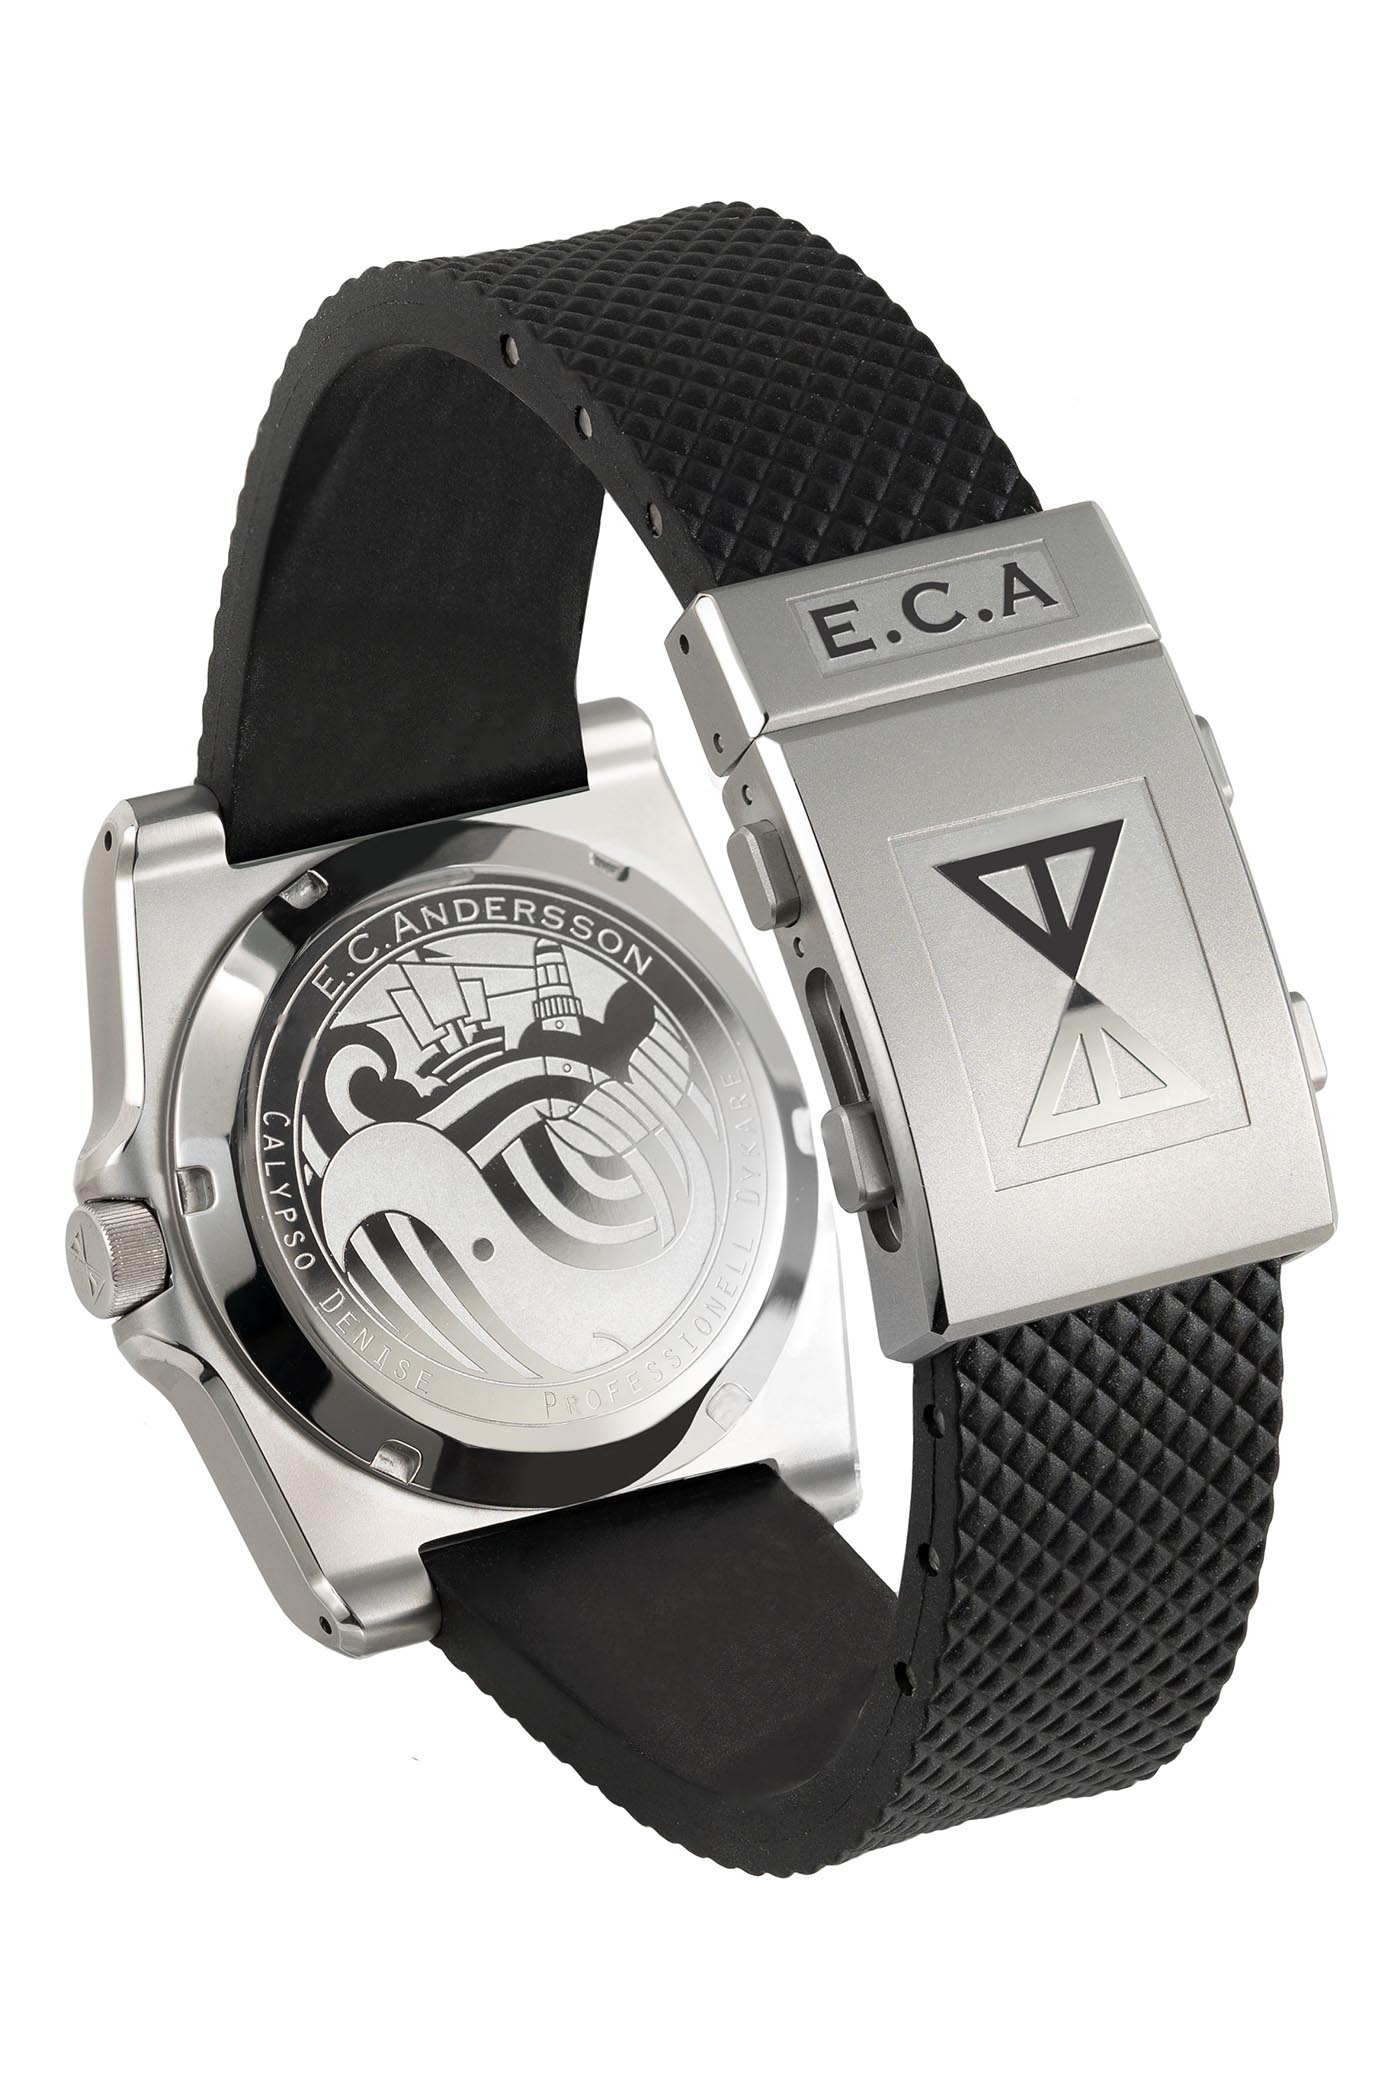 E.C.Andersson Denise dive watch - 8